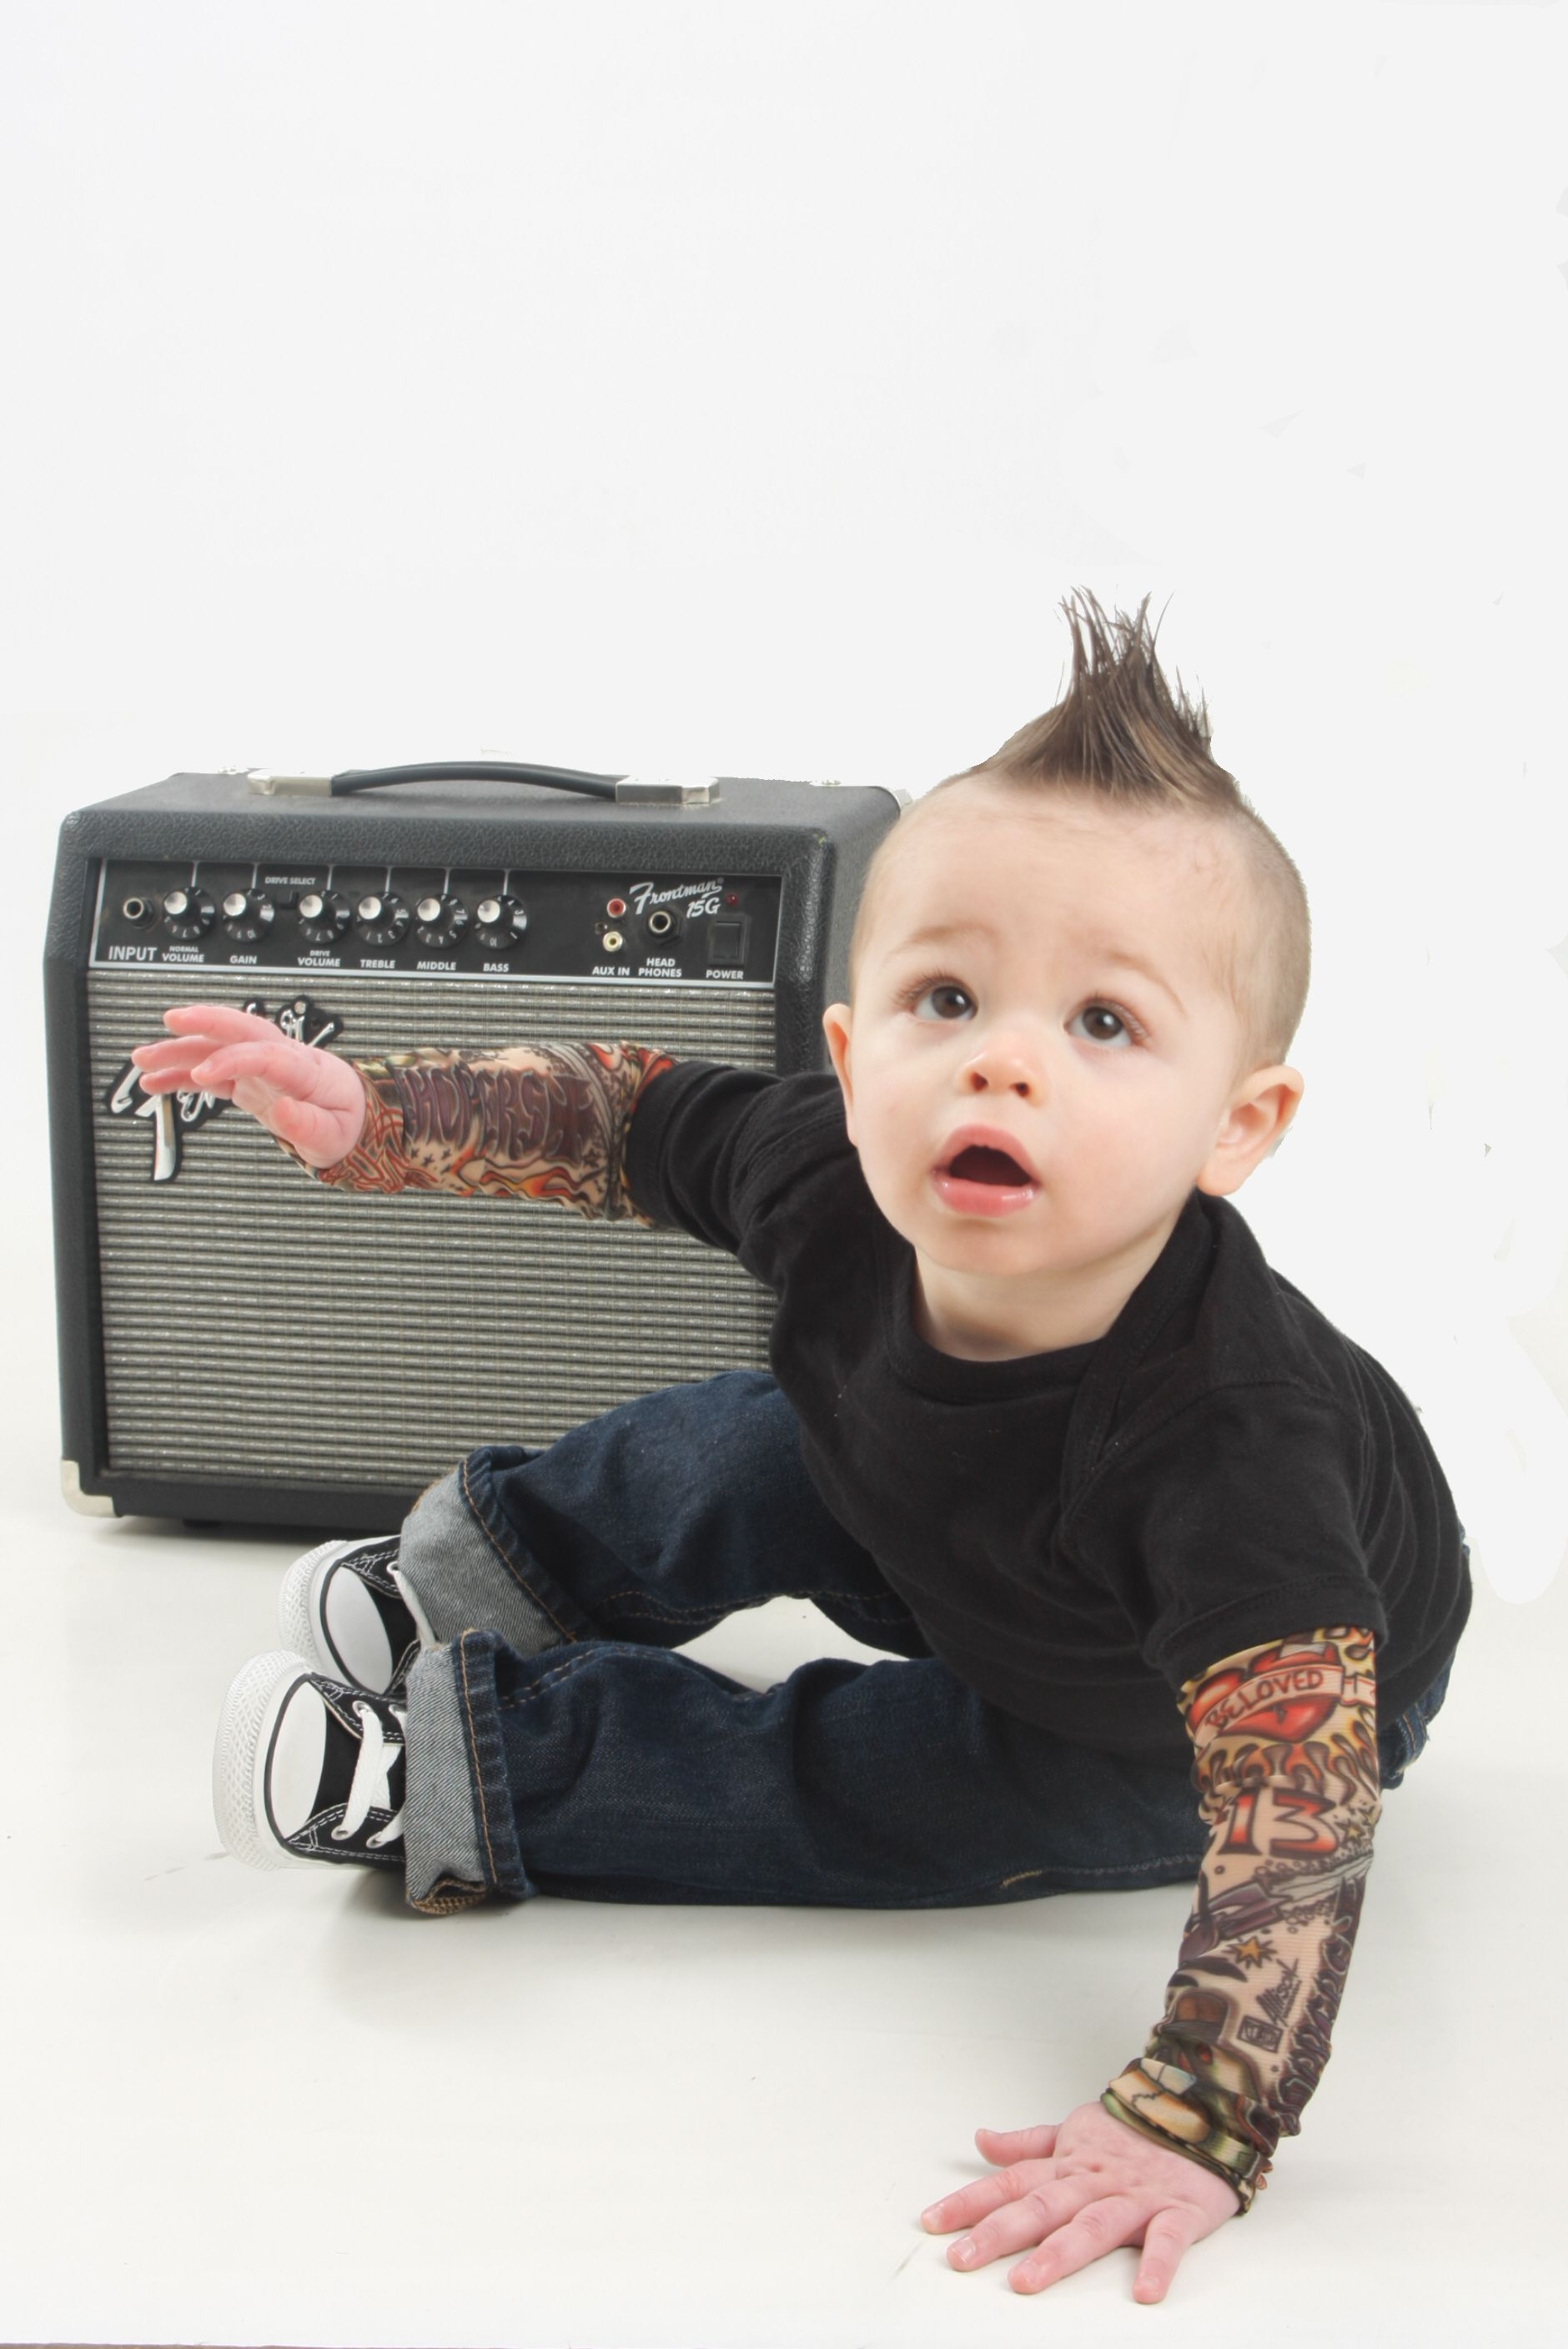 4be24d158fa0 My little M s 1 year photo. I m still loving his tattoo sleeves! My ...